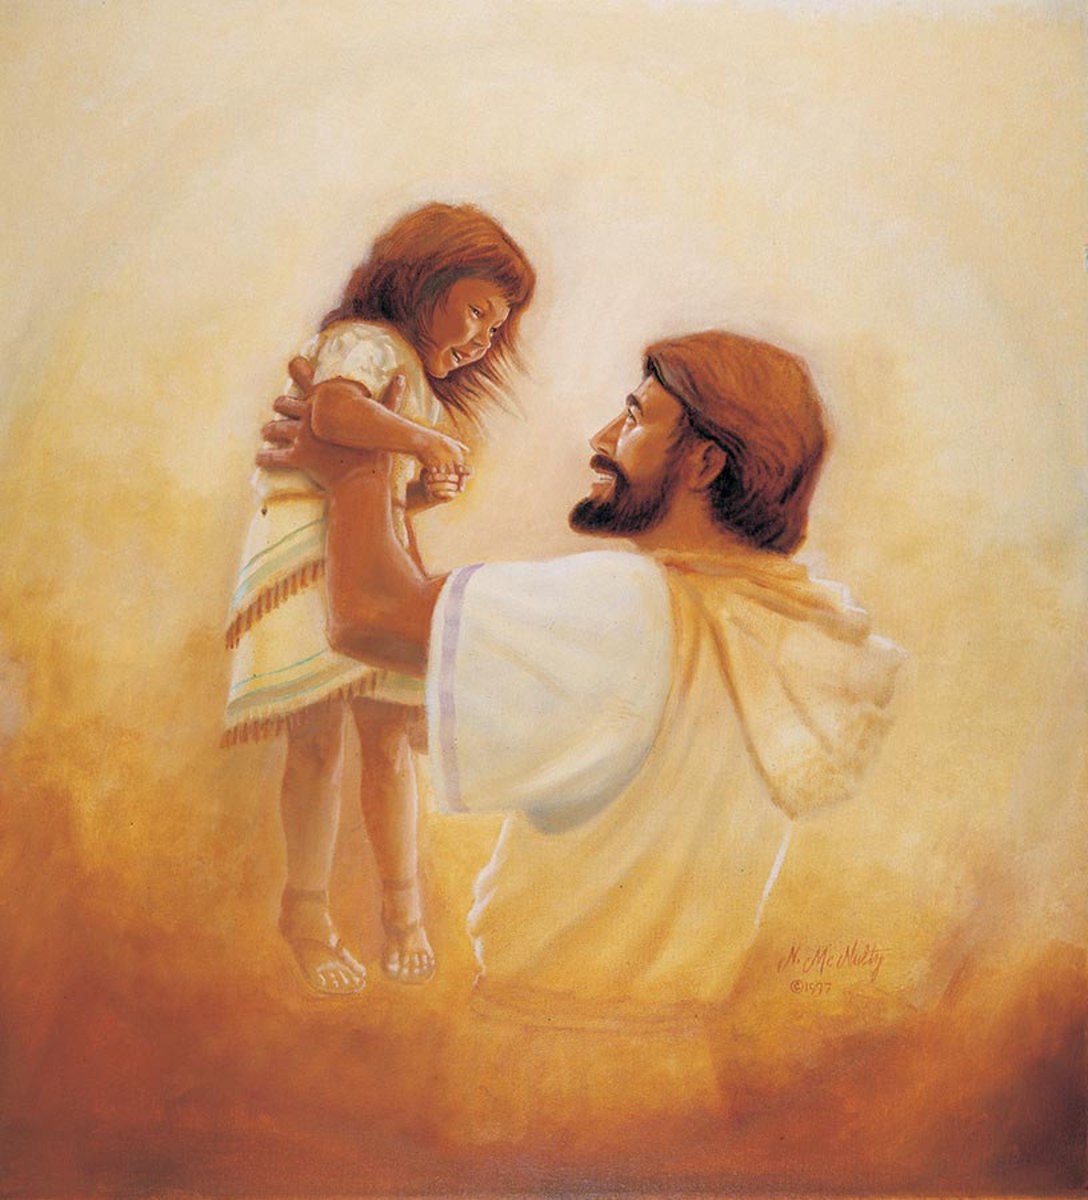 Jesus And The Girl Wall Mural Sample